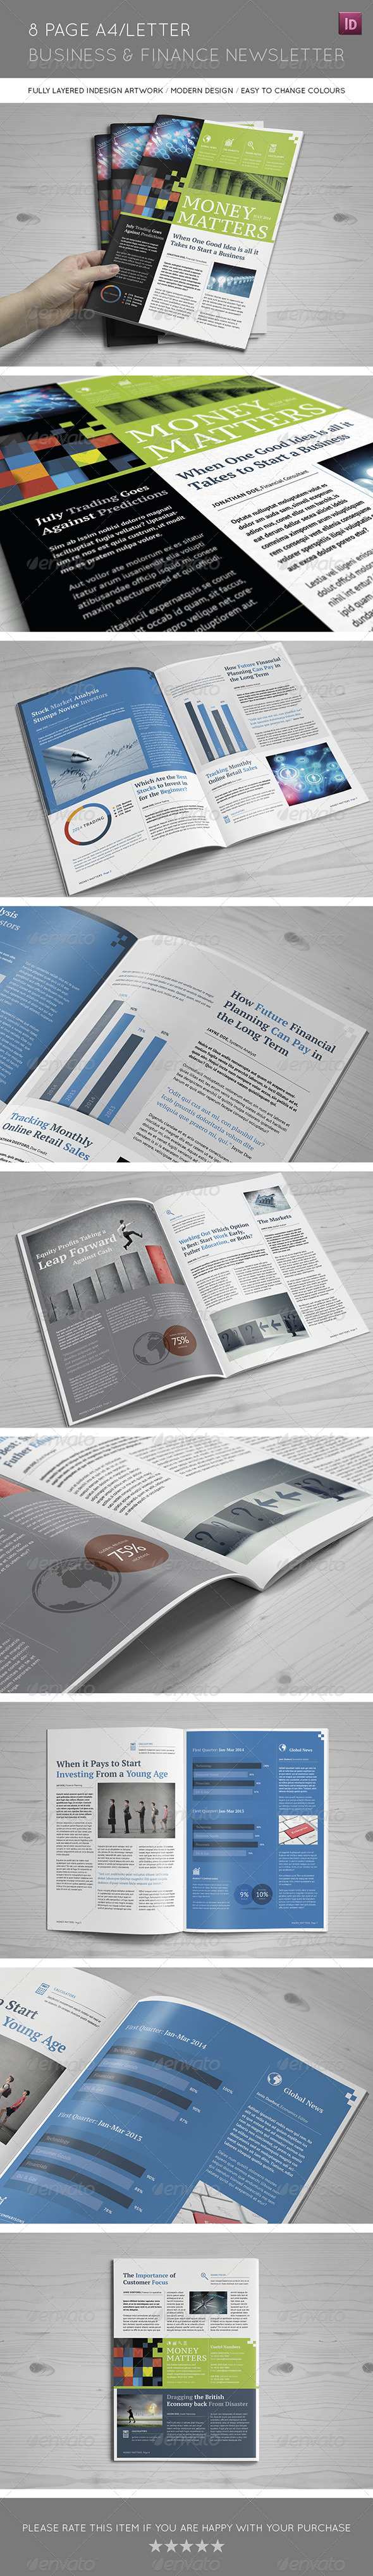 GraphicRiver 8 Page A4 Letter Business and Finance Newsletter 8239966